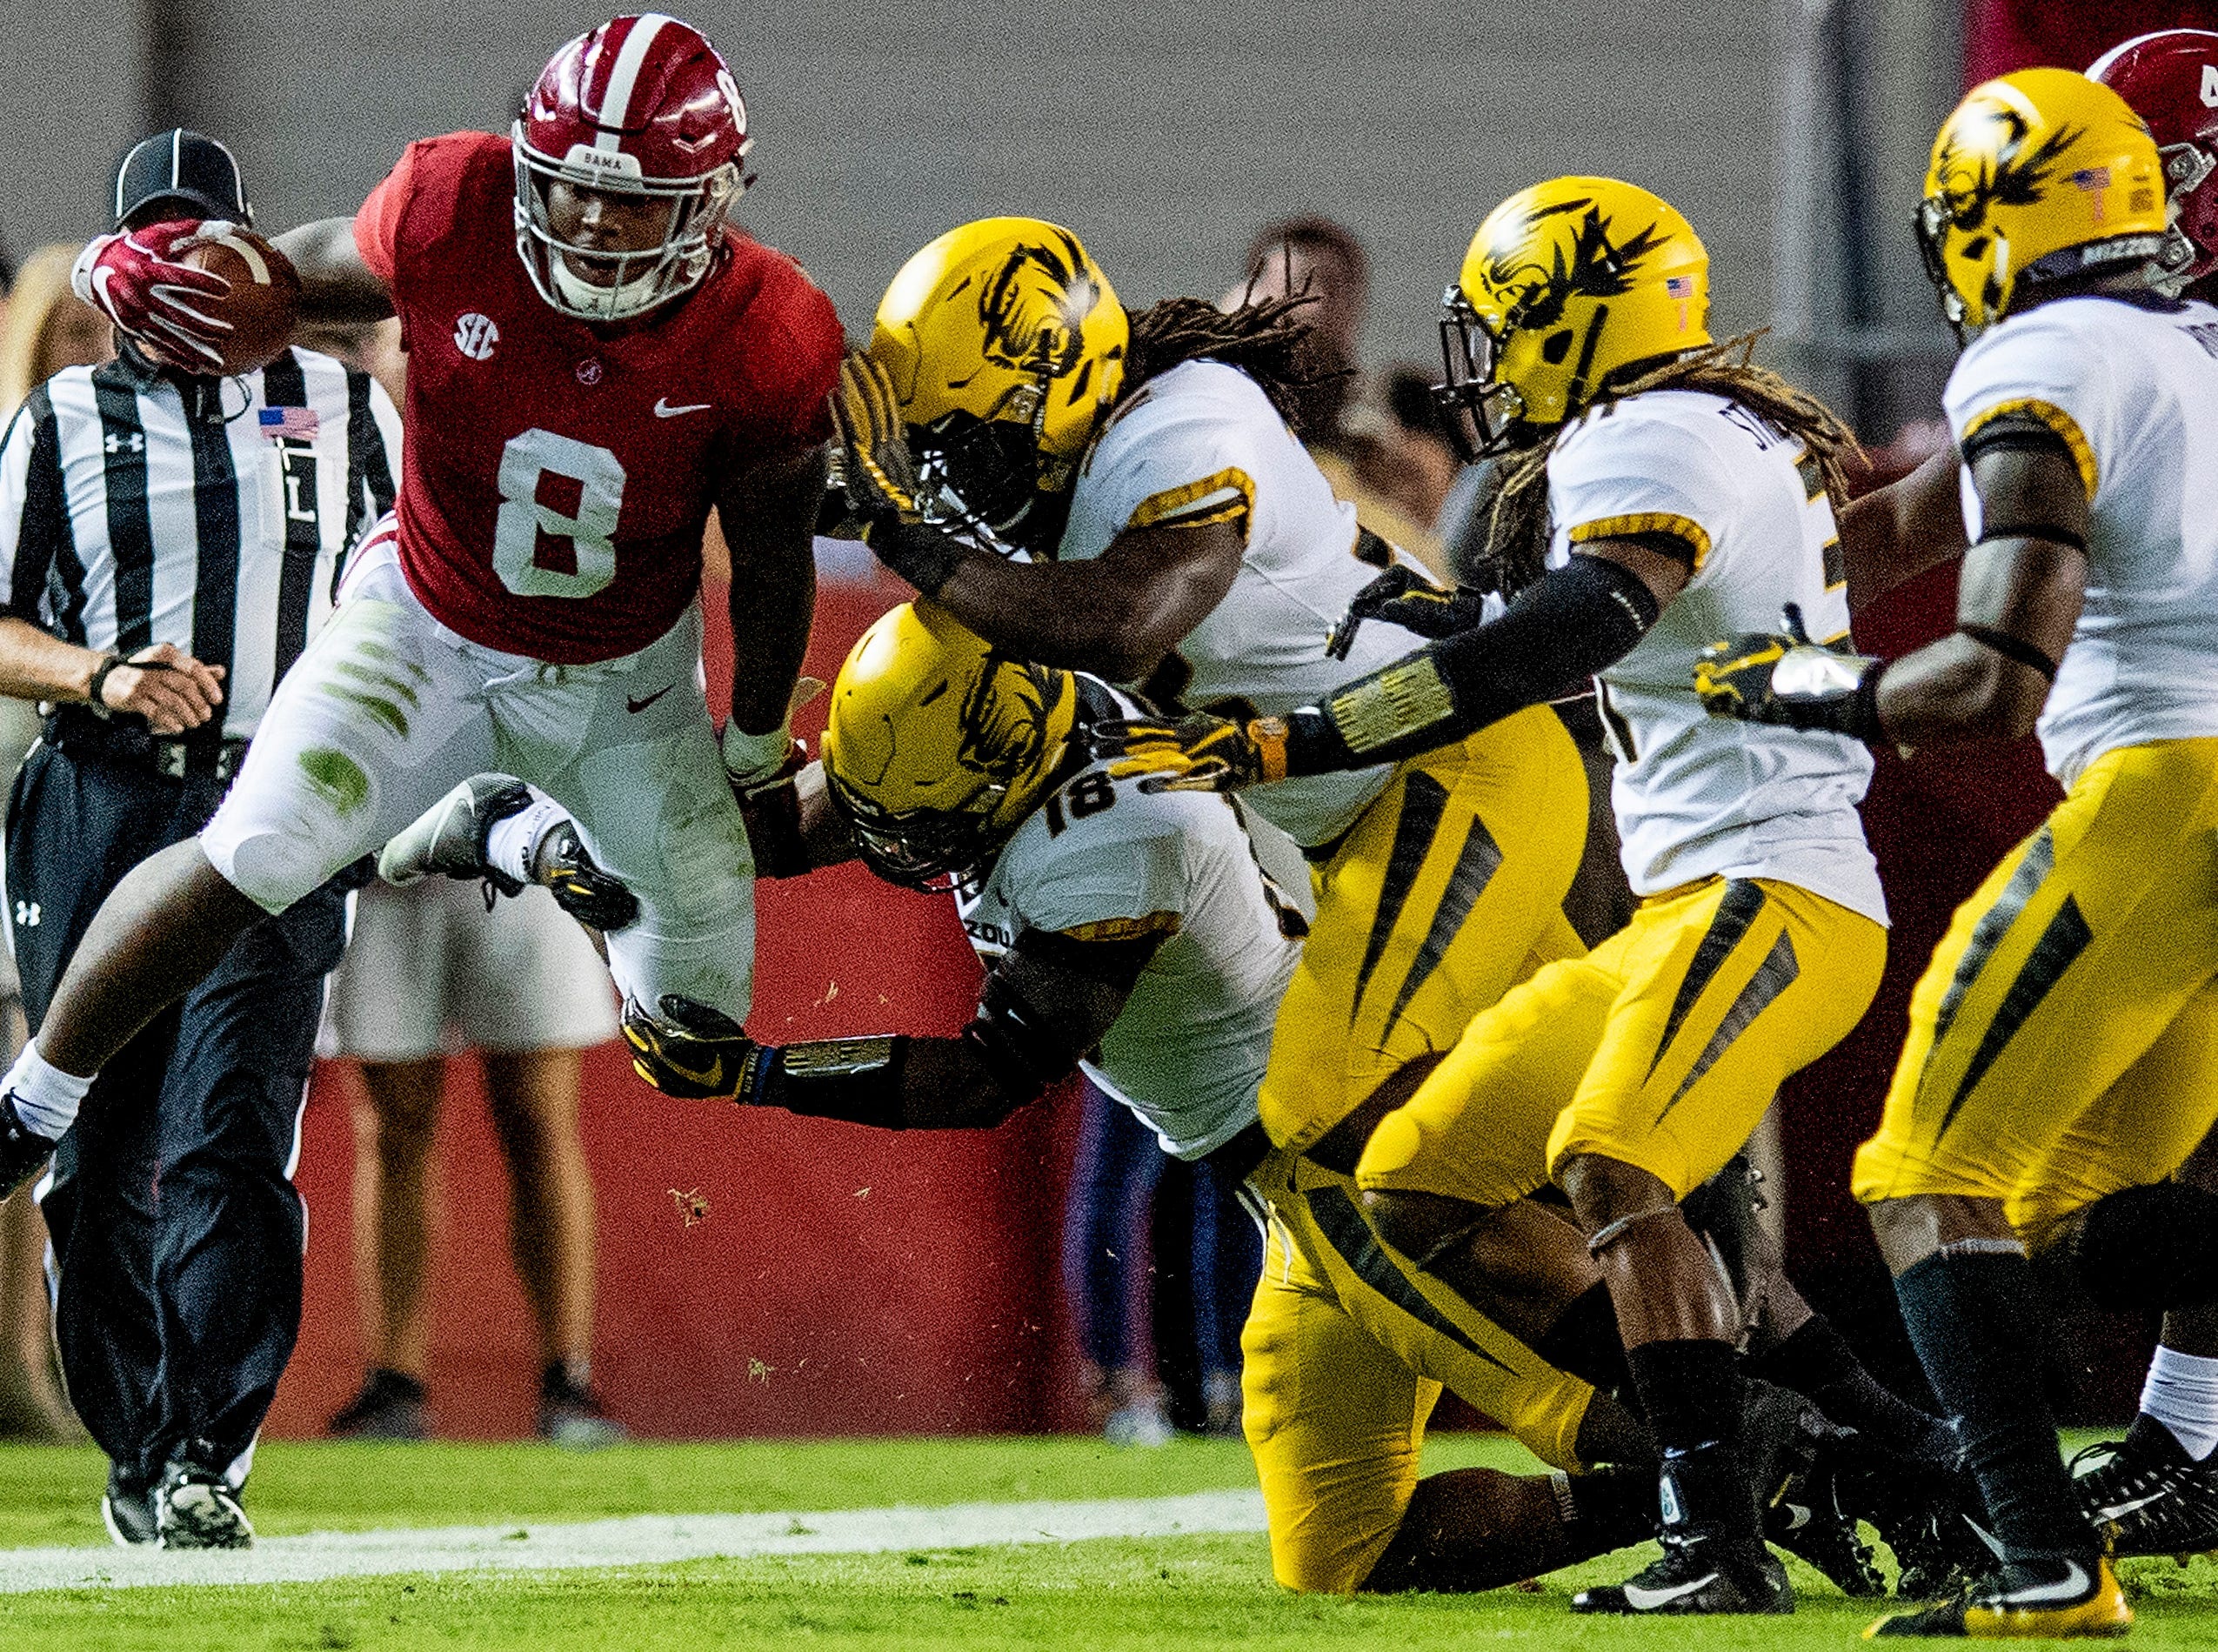 Alabama running back Josh Jacobs (8) is forced out of bounds on a kick return against Missouri in first half action at Bryant Denny Stadium in Tuscaloosa, Ala., on Saturday October 13, 2018.